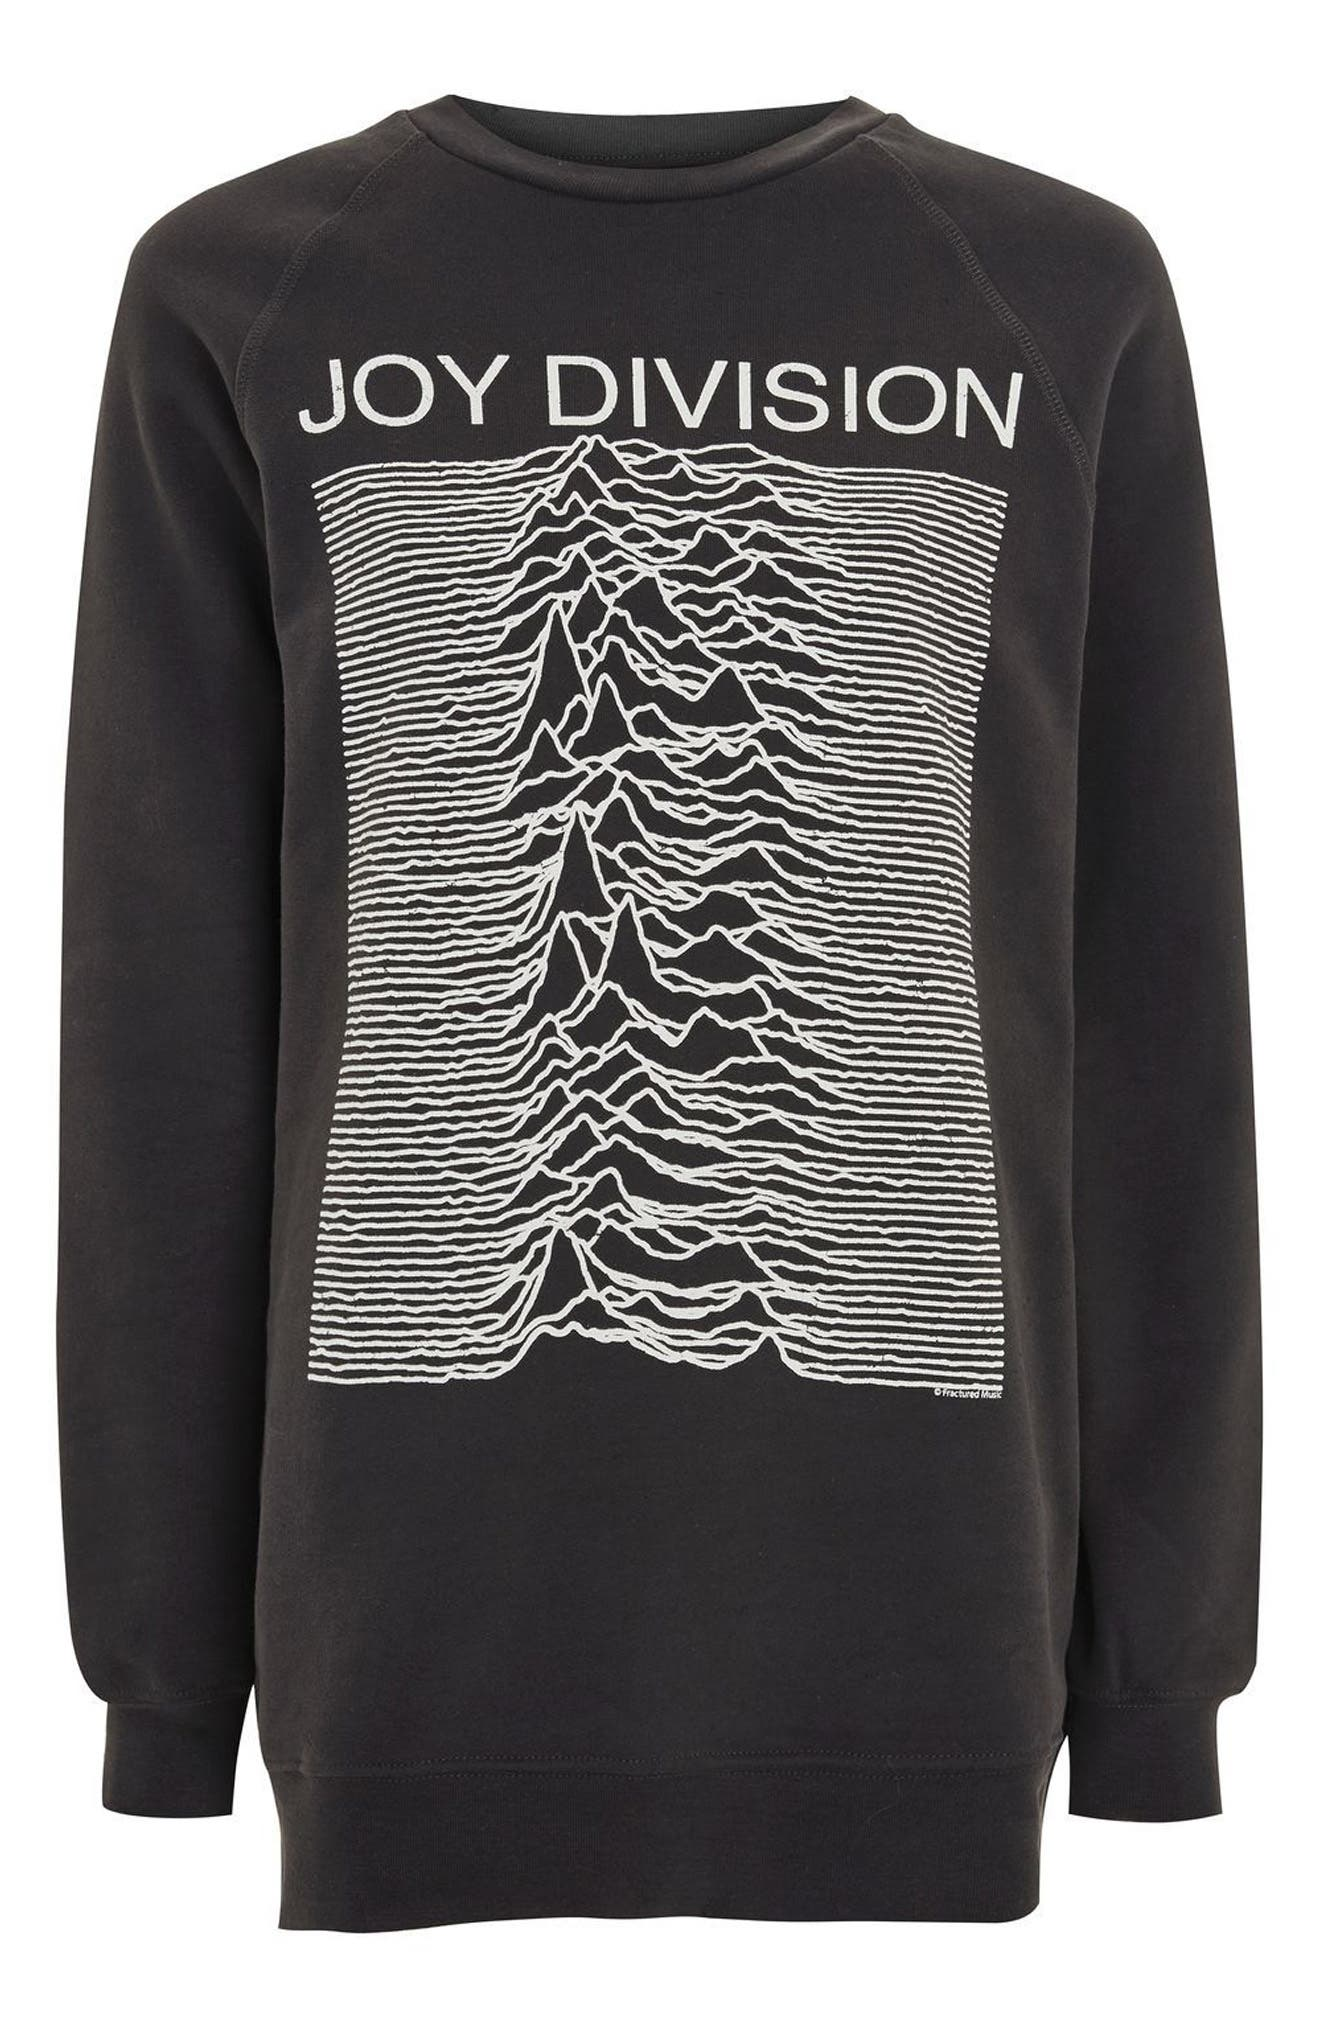 by And Finally Joy Division Sweatshirt,                             Alternate thumbnail 4, color,                             001